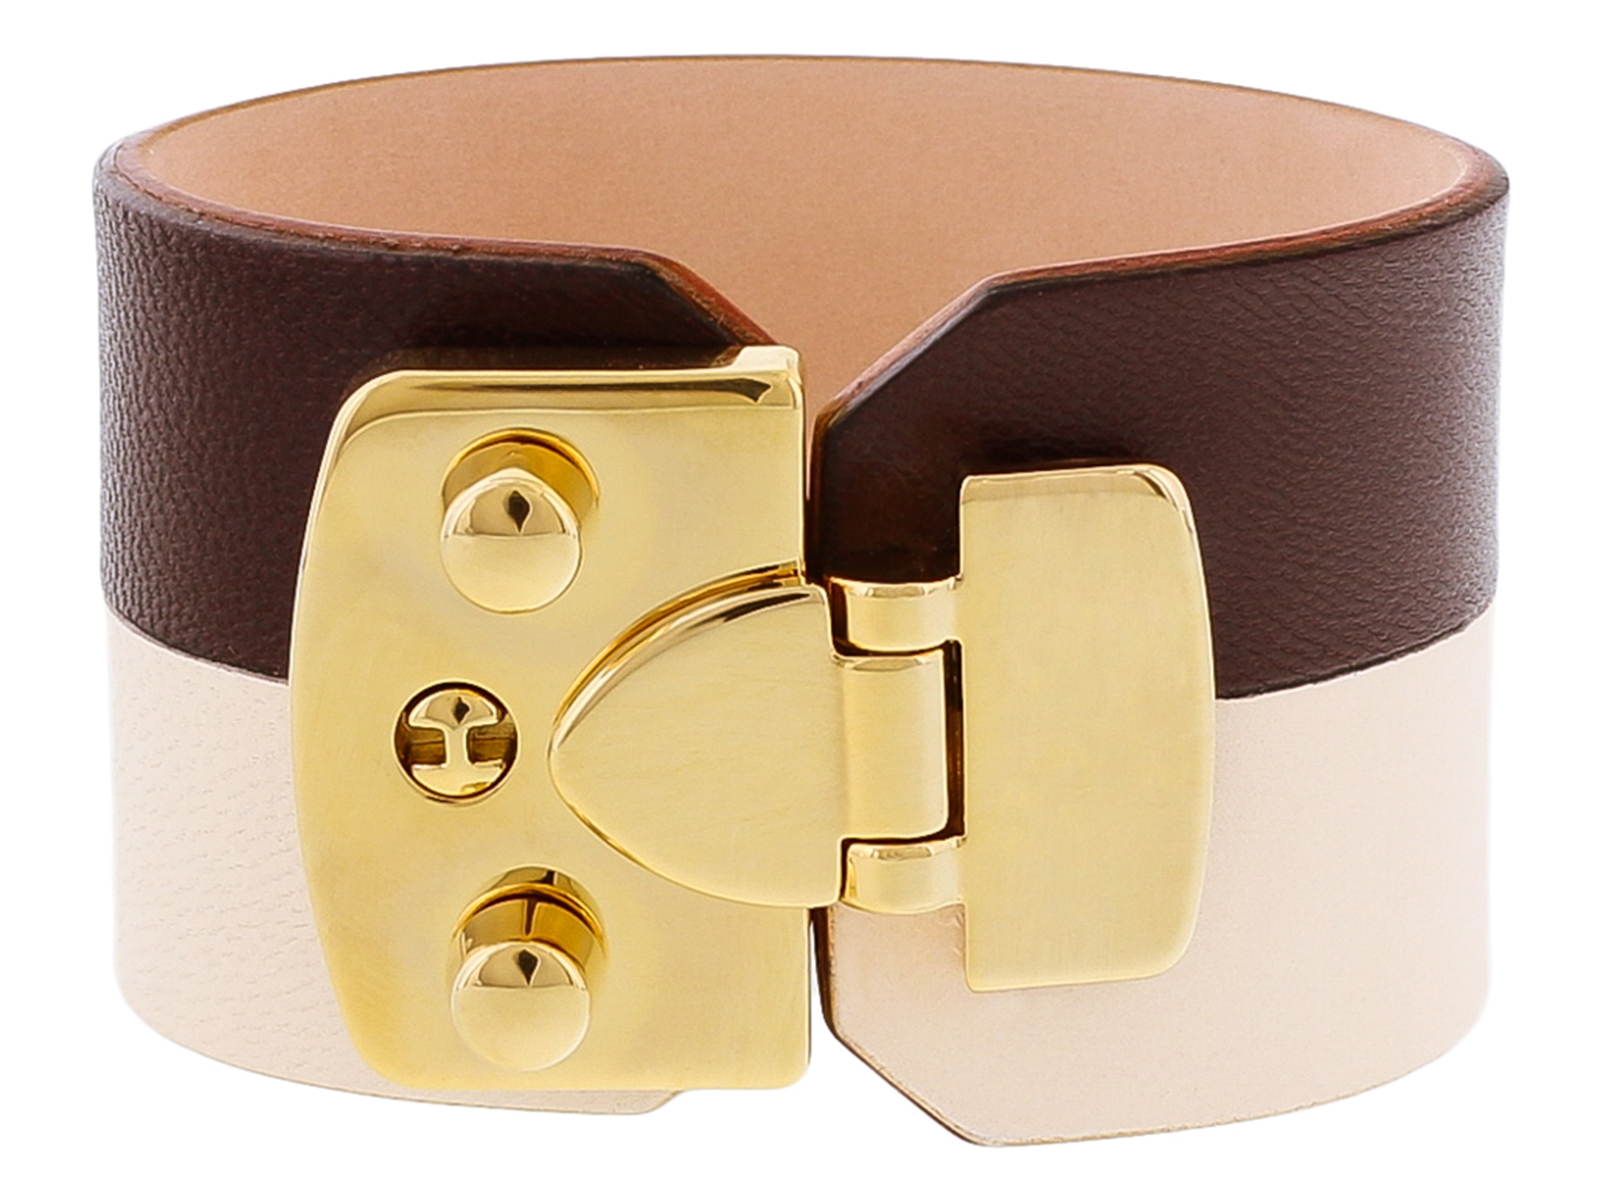 Stamerra BOSSA CREMA Chocolate/Cream Genuine Leather Cuff Bracelet